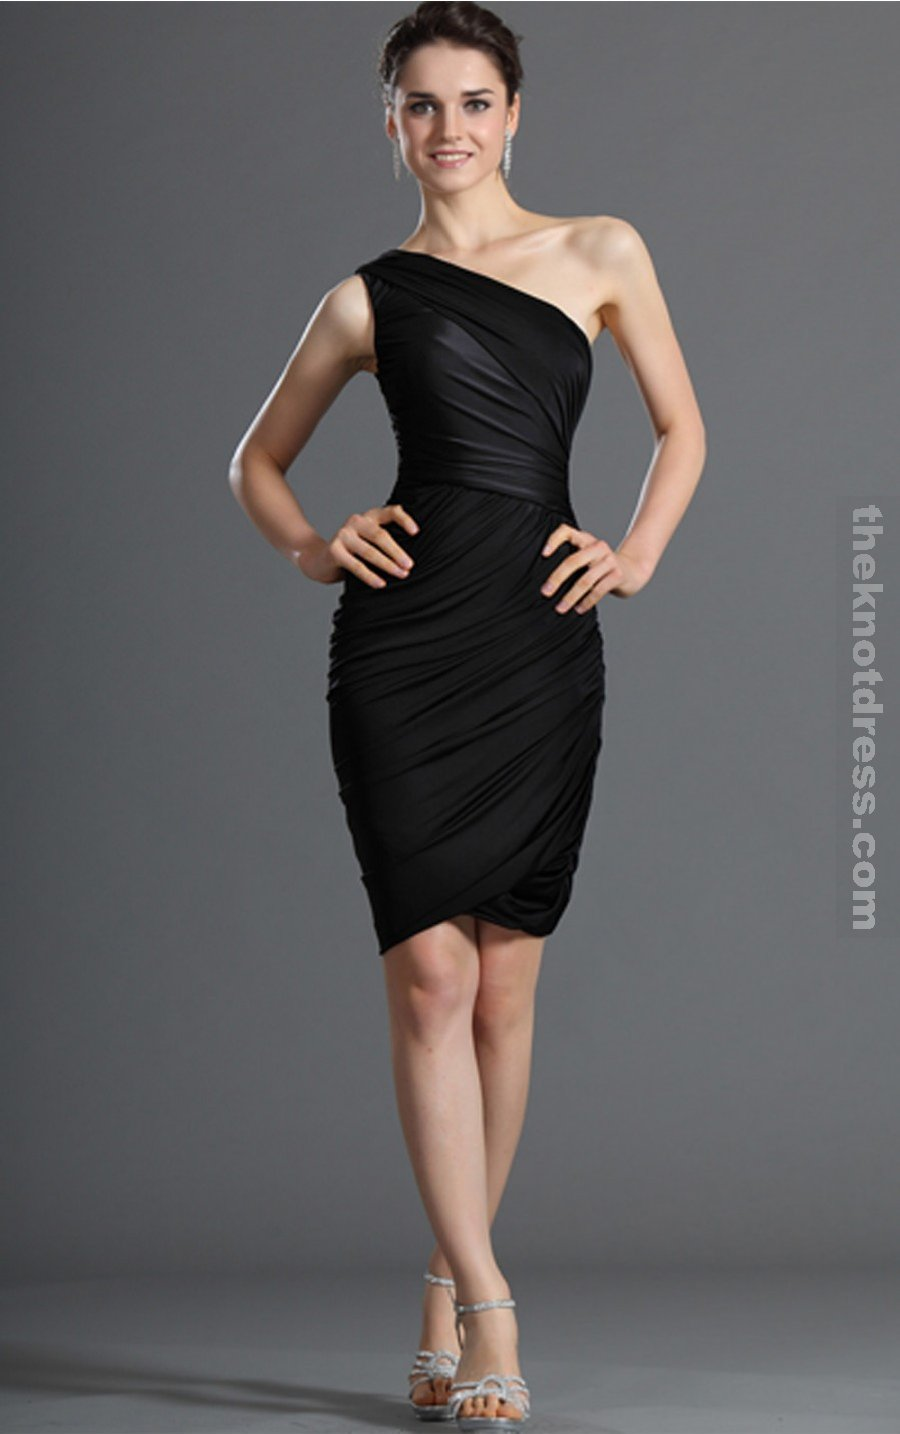 Long Sleeve Black Dress Accessories Shopping Guide We